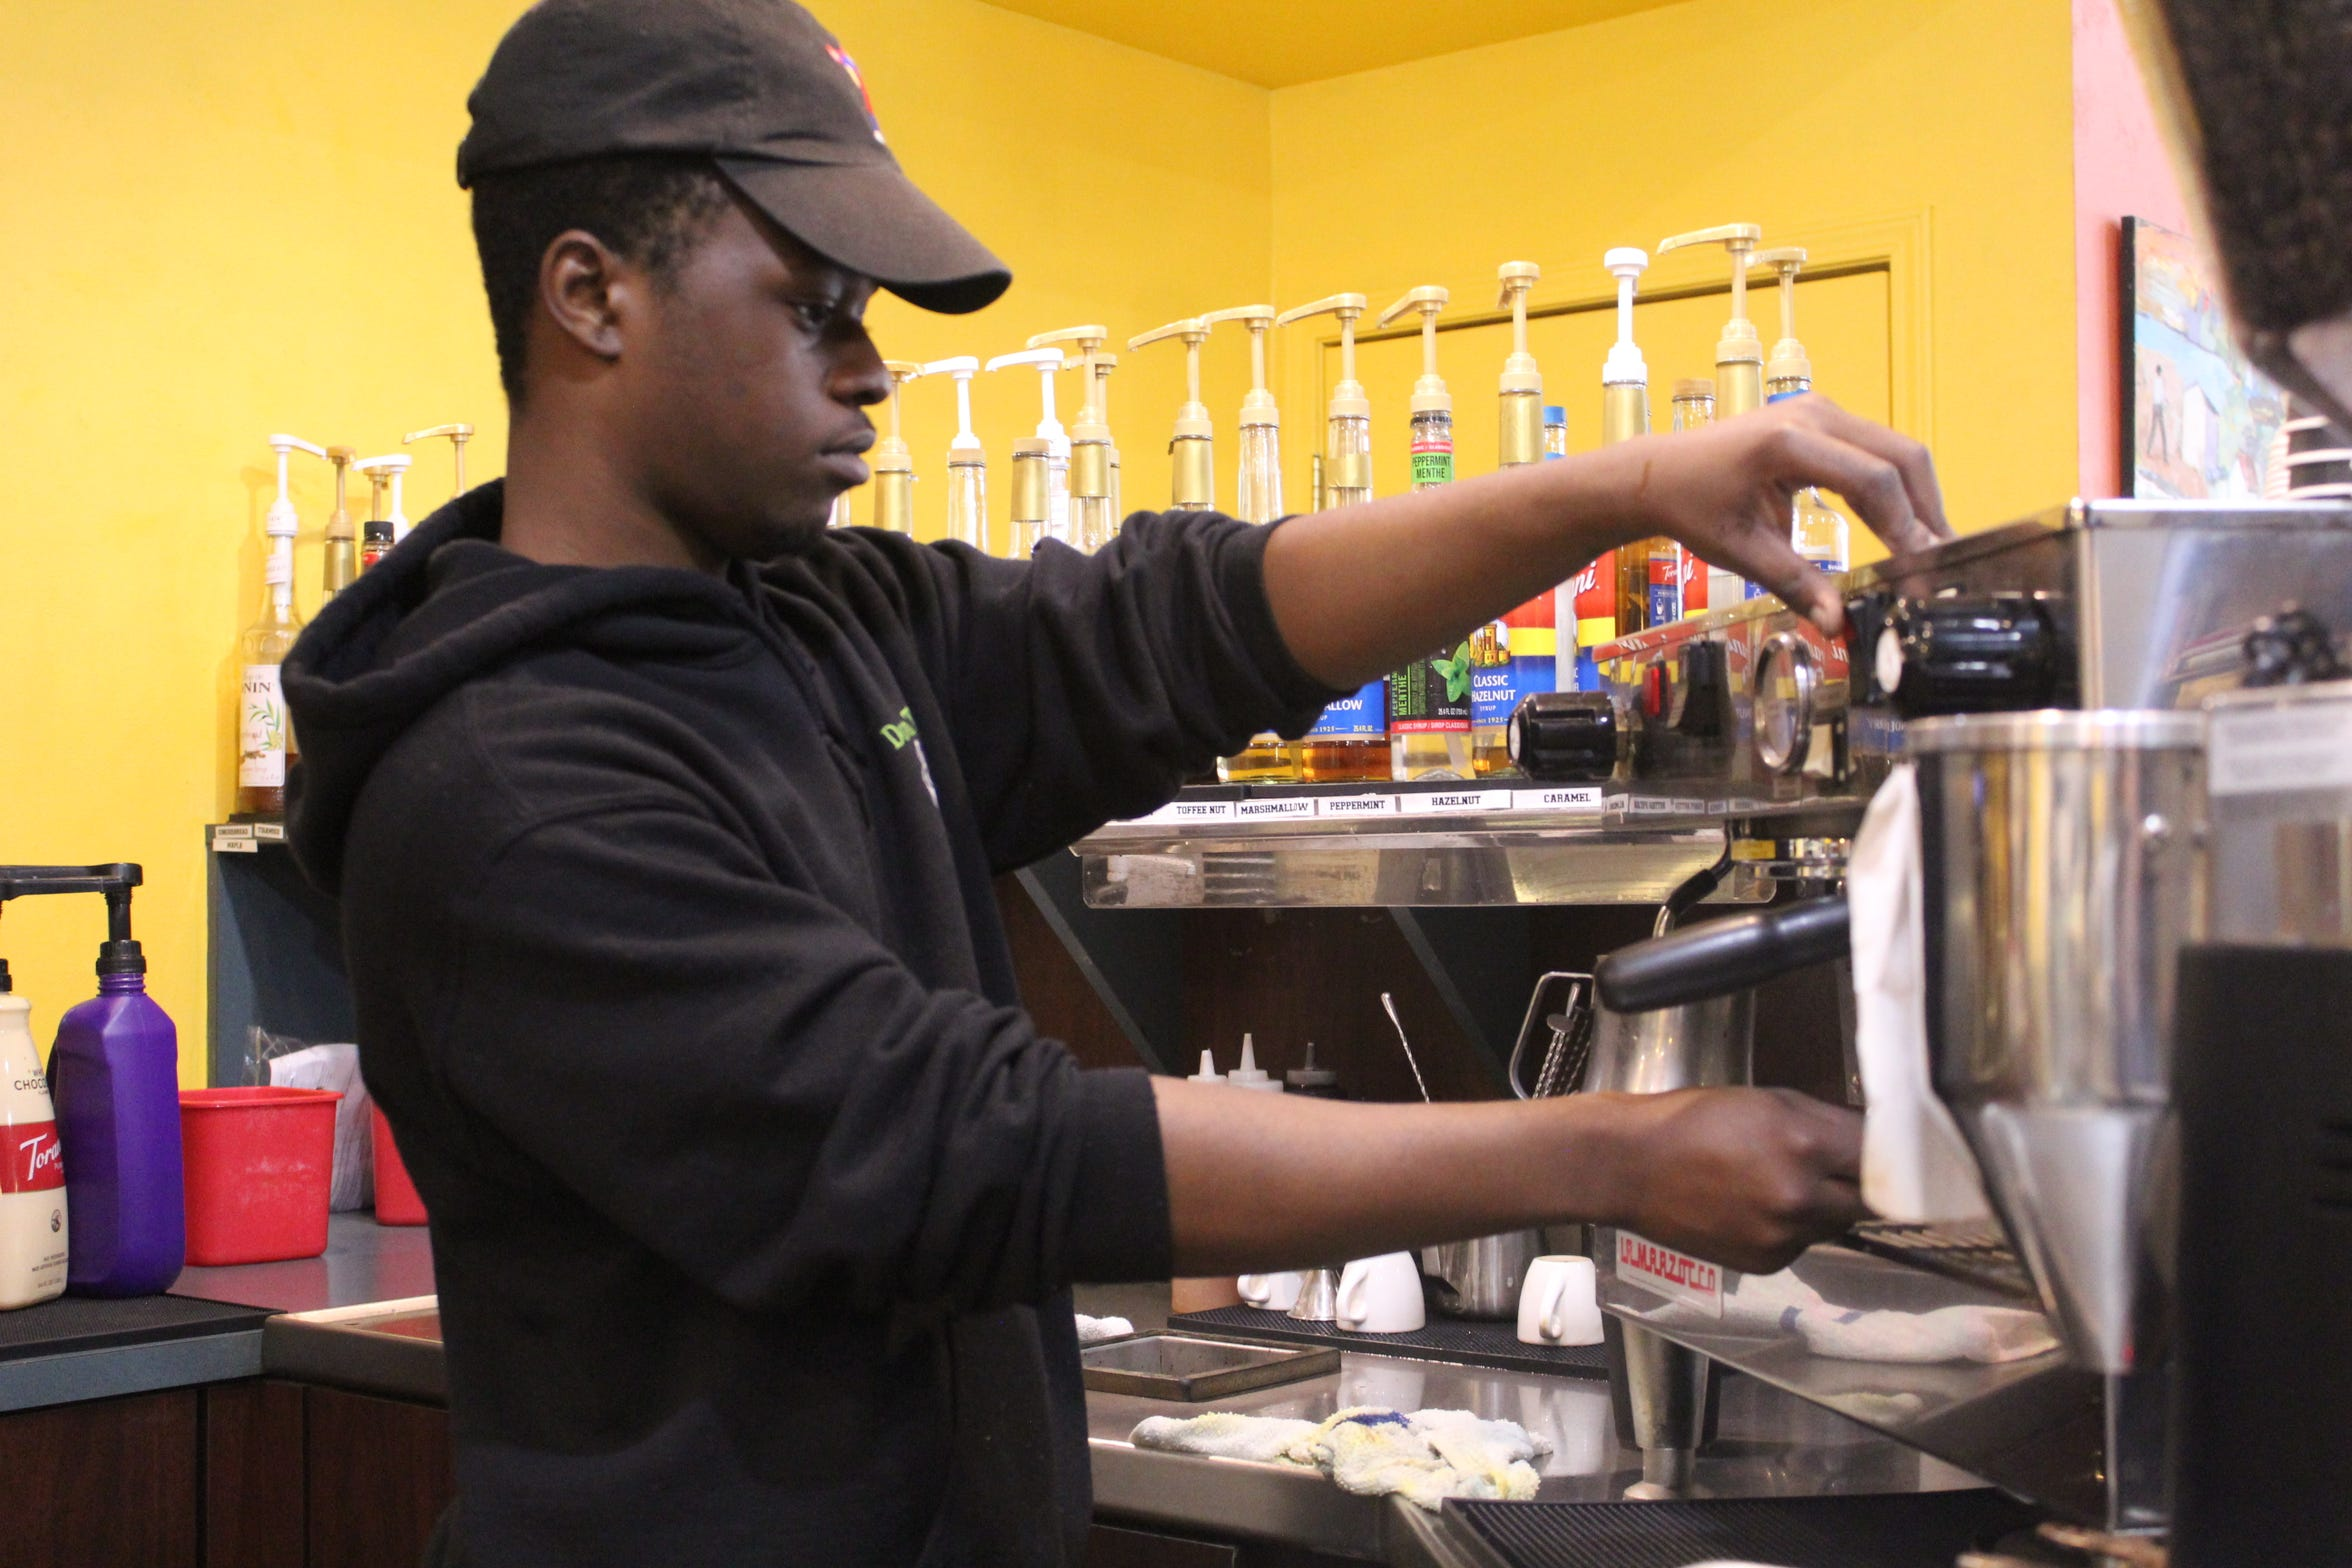 Down Thyme Cafe employee Joe Jones makes a coffee drink Wednesday at the downtown Fremont business. Jones said there is not nearly the same amount of foot traffic coming into the business with the coronavirus-related restrictions put in place.